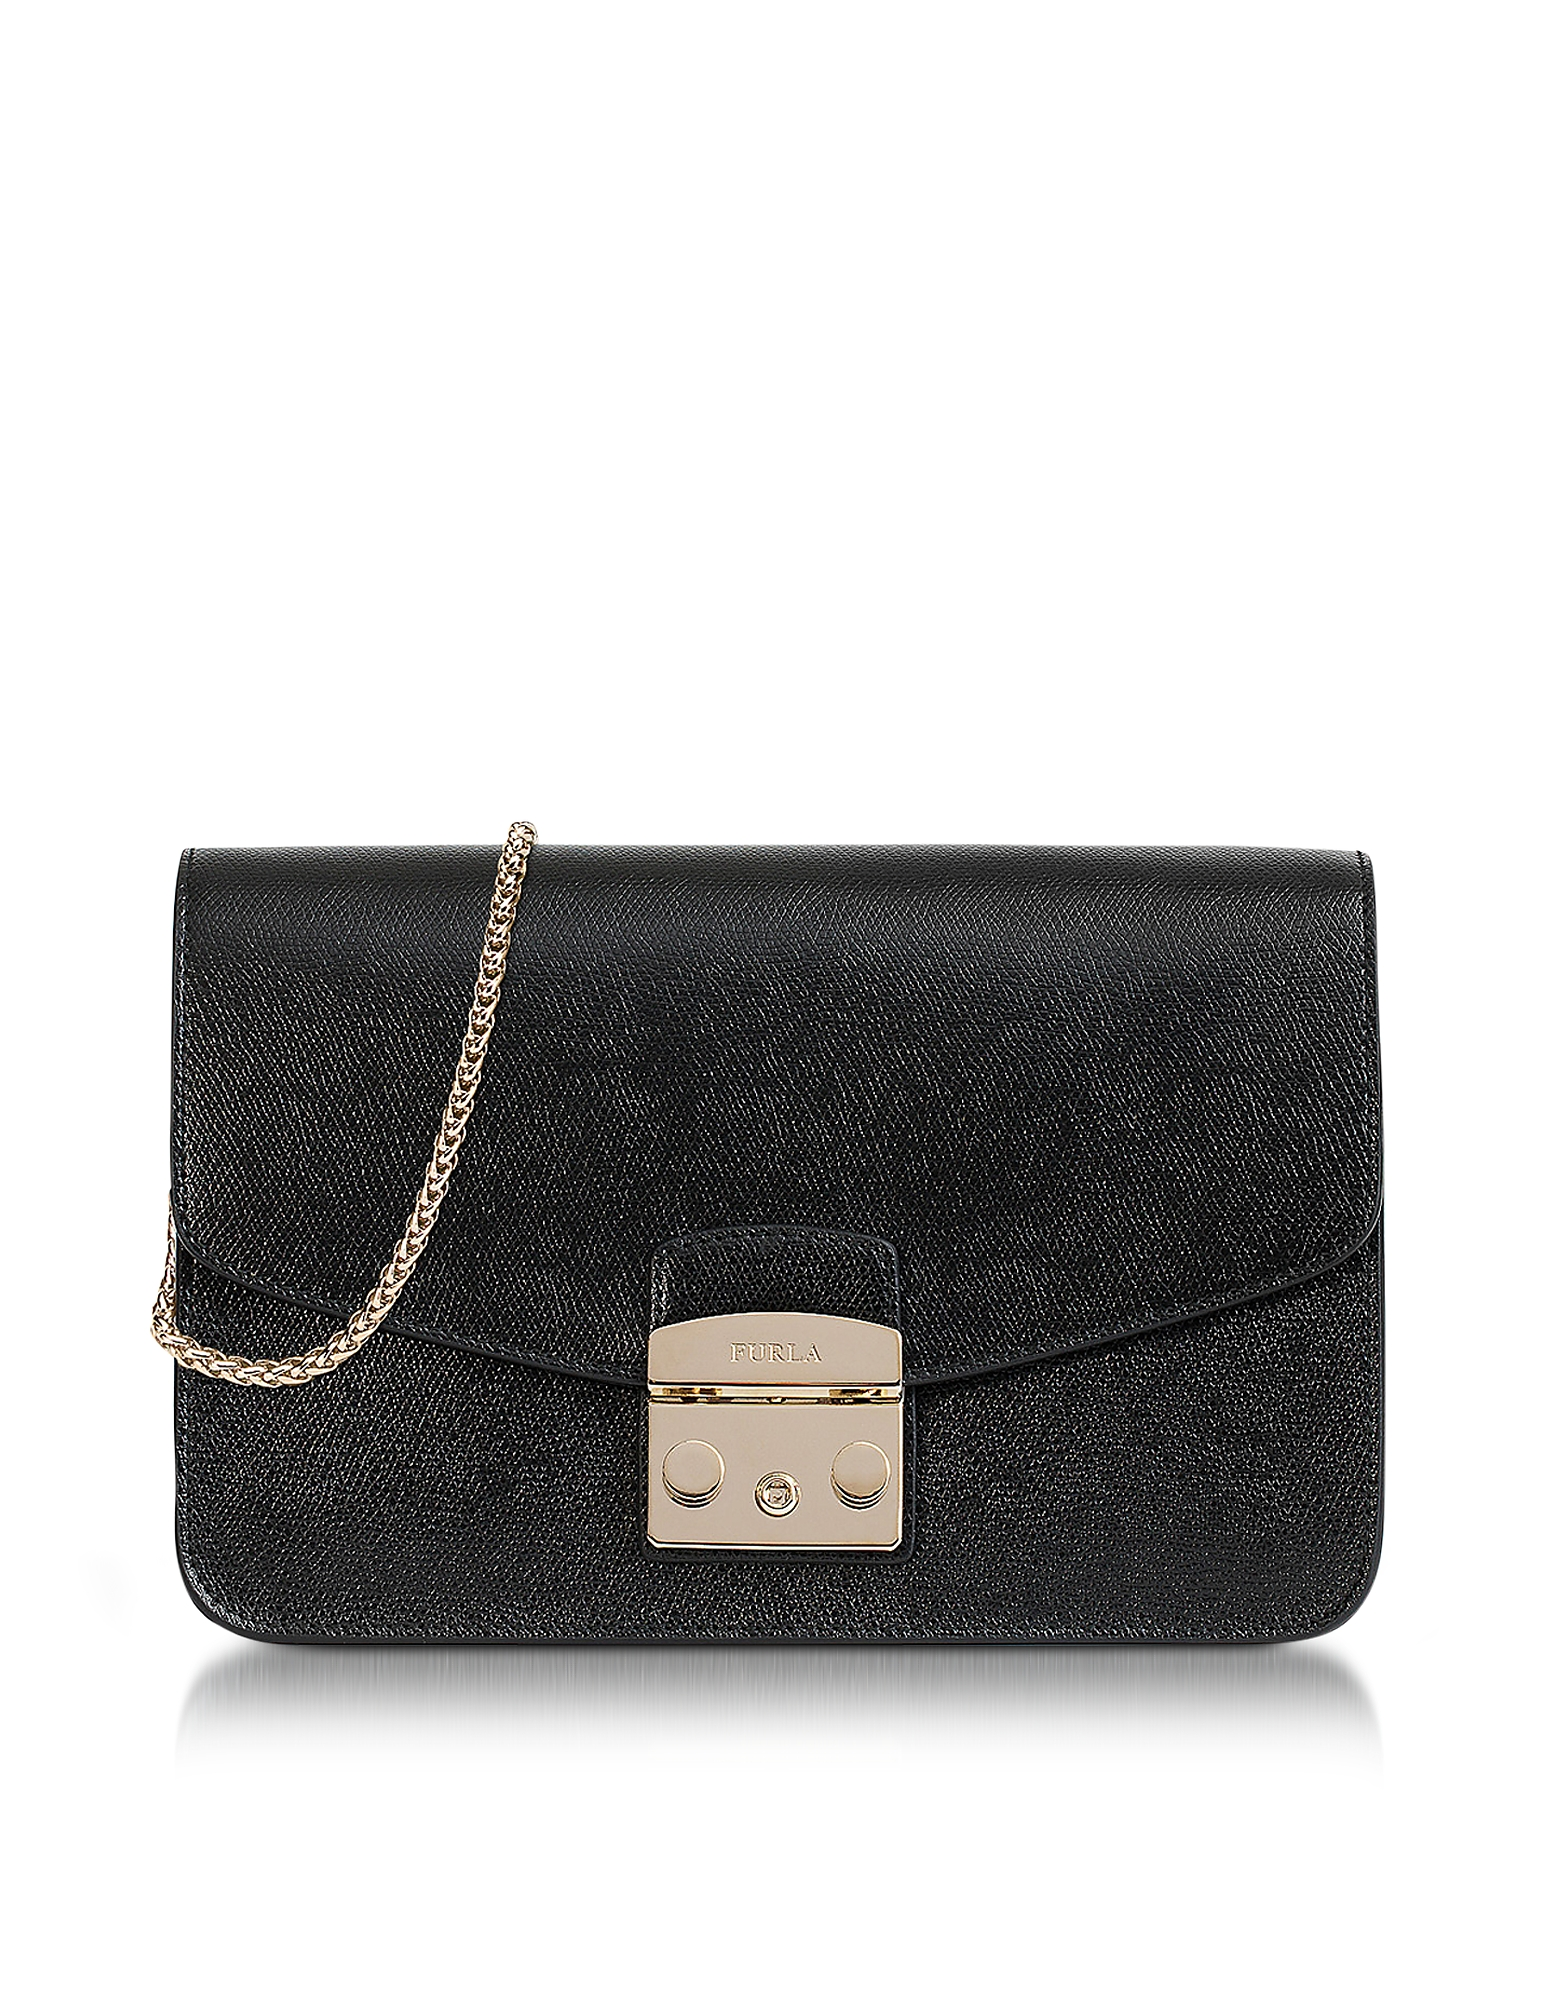 Furla Handbags, Onyx Metropolis Small Leather Shoulder Bag